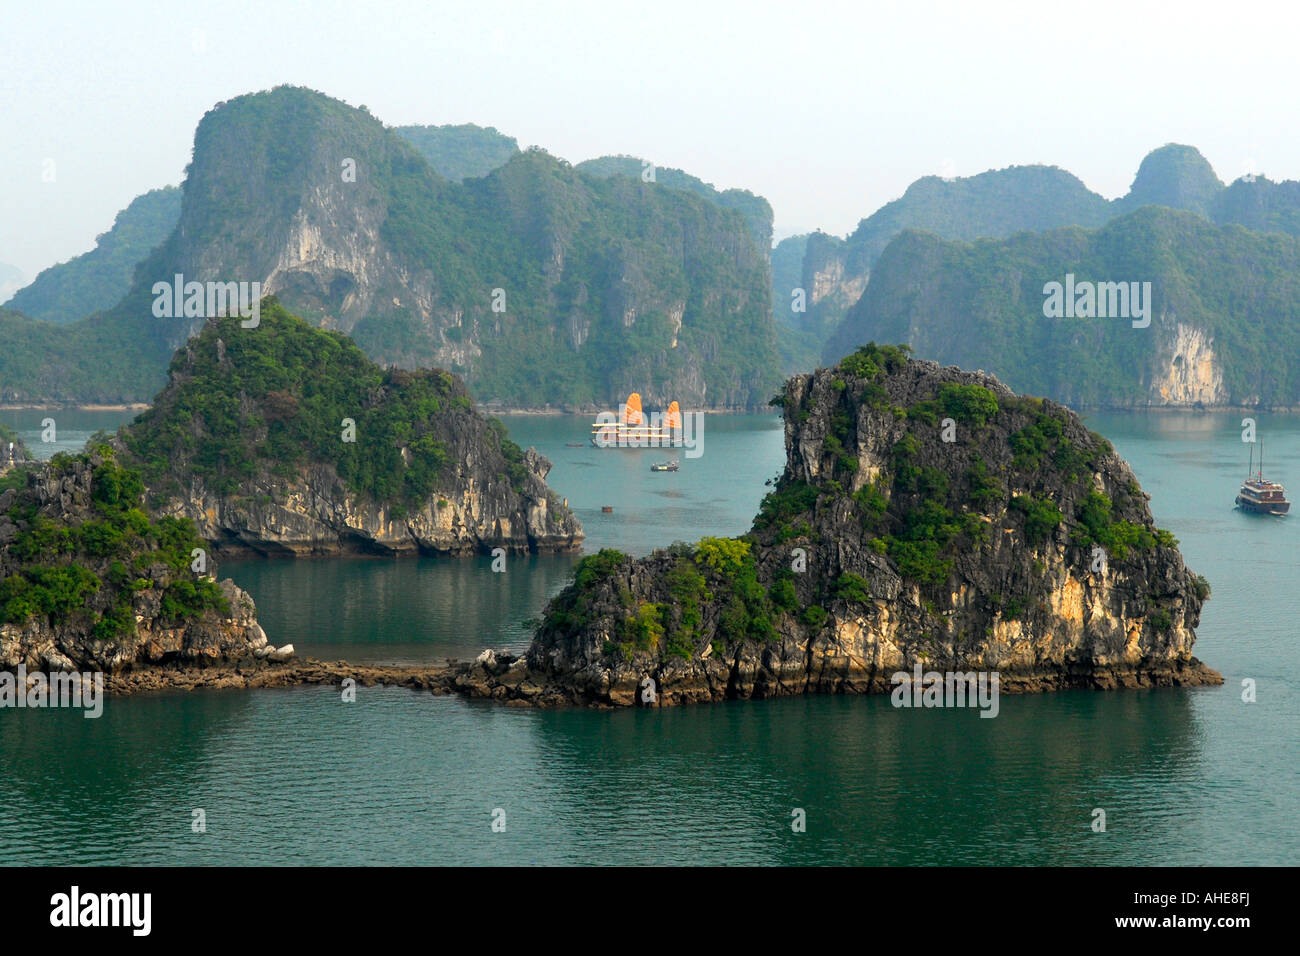 Vietnam , Halong Bay , panoramic view over limestone islands & lagoon with junk boats & cruise ships passing - Stock Image